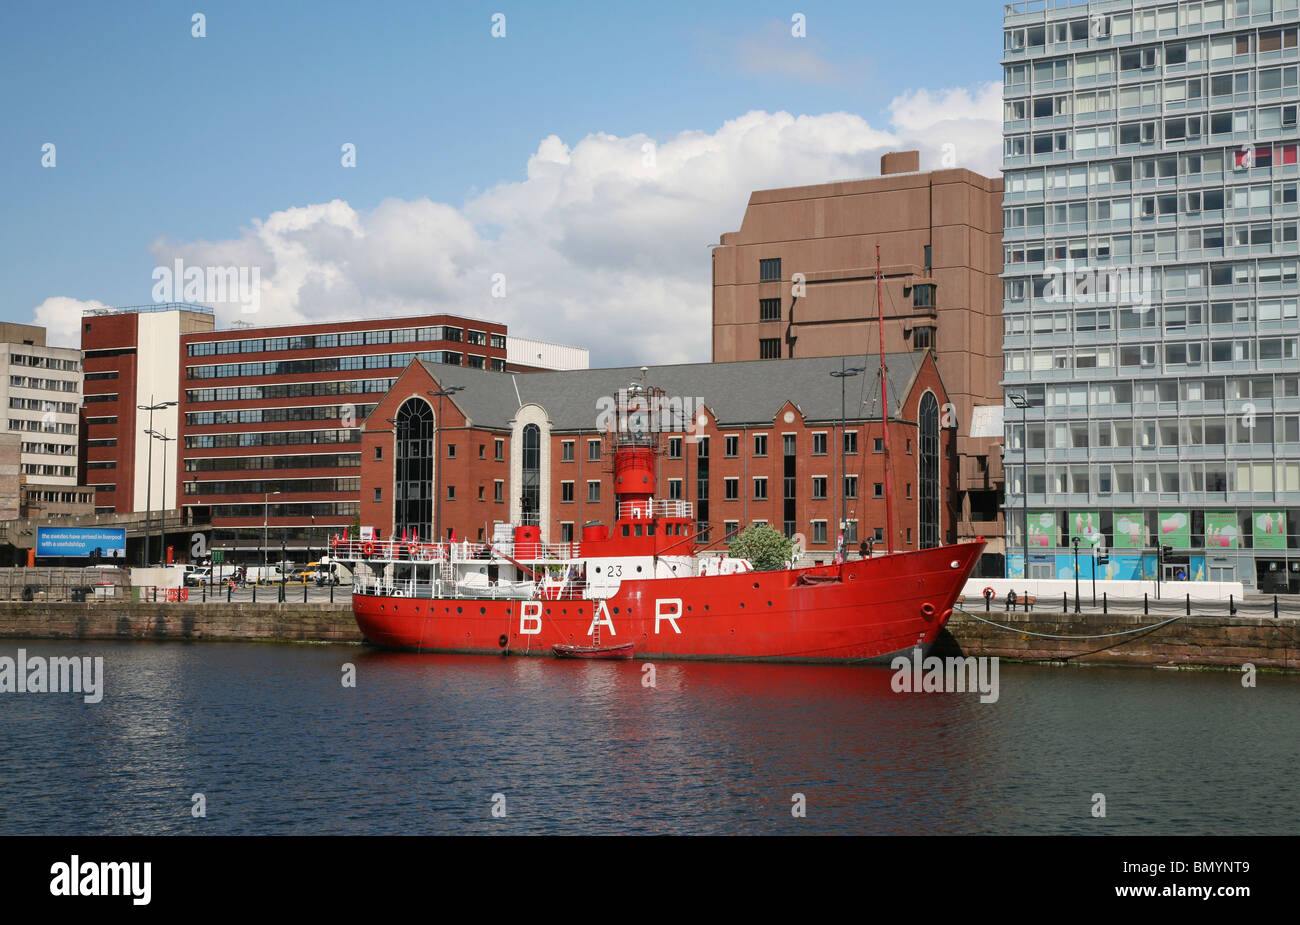 The former Bar Lightship berthed at Canning Dock on the River Mersey, redevelopment of this historic dock was completed - Stock Image